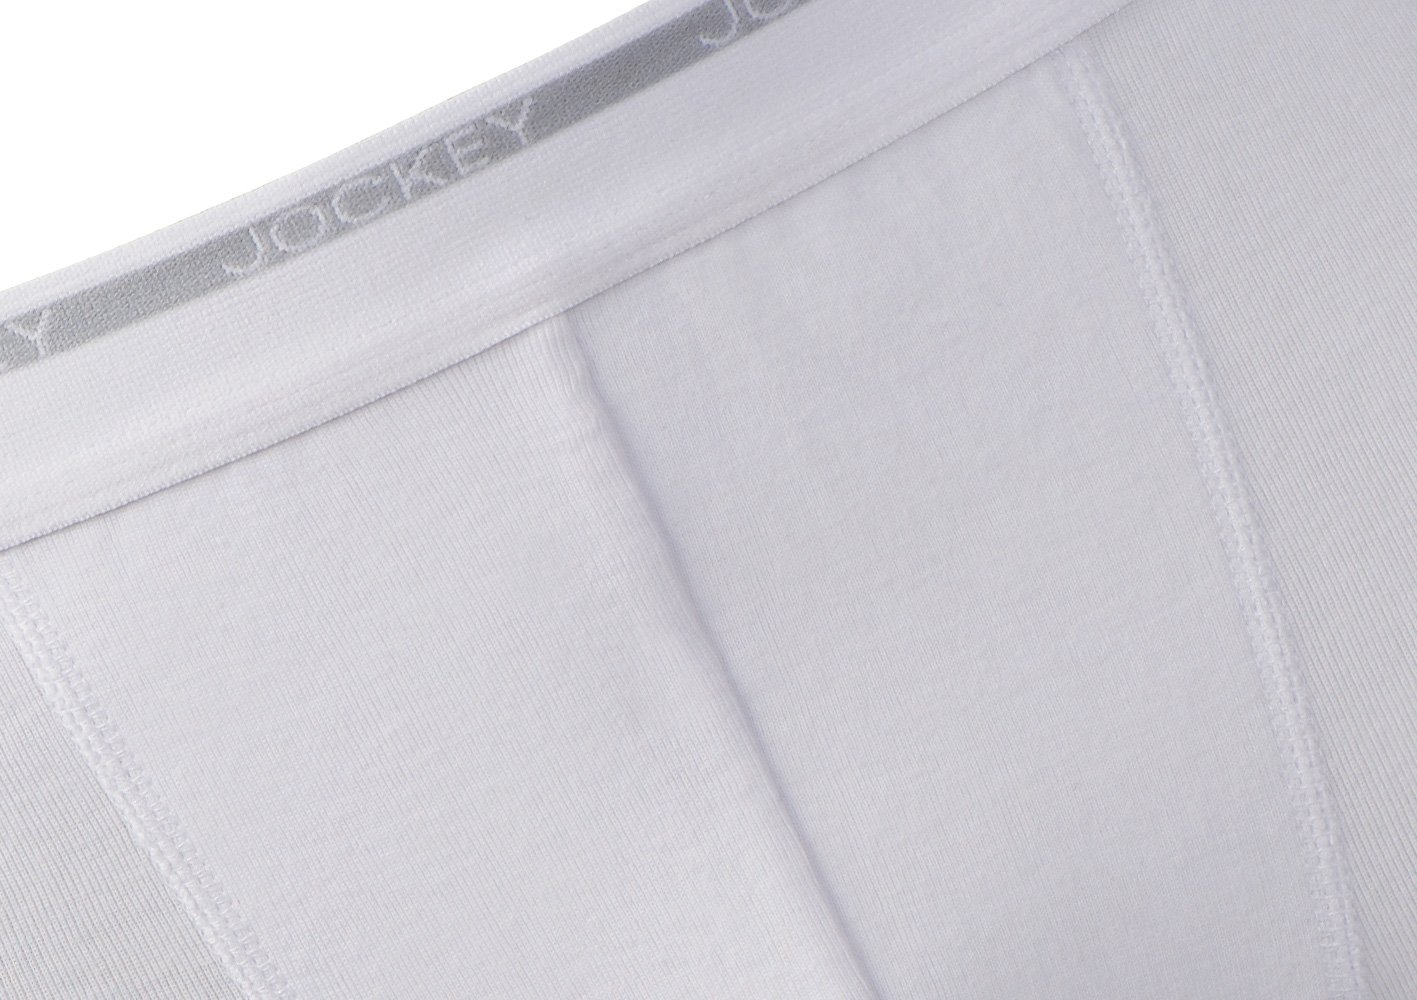 Jockey 2 Pack Short Trunk Boxer Shorts 6XL White